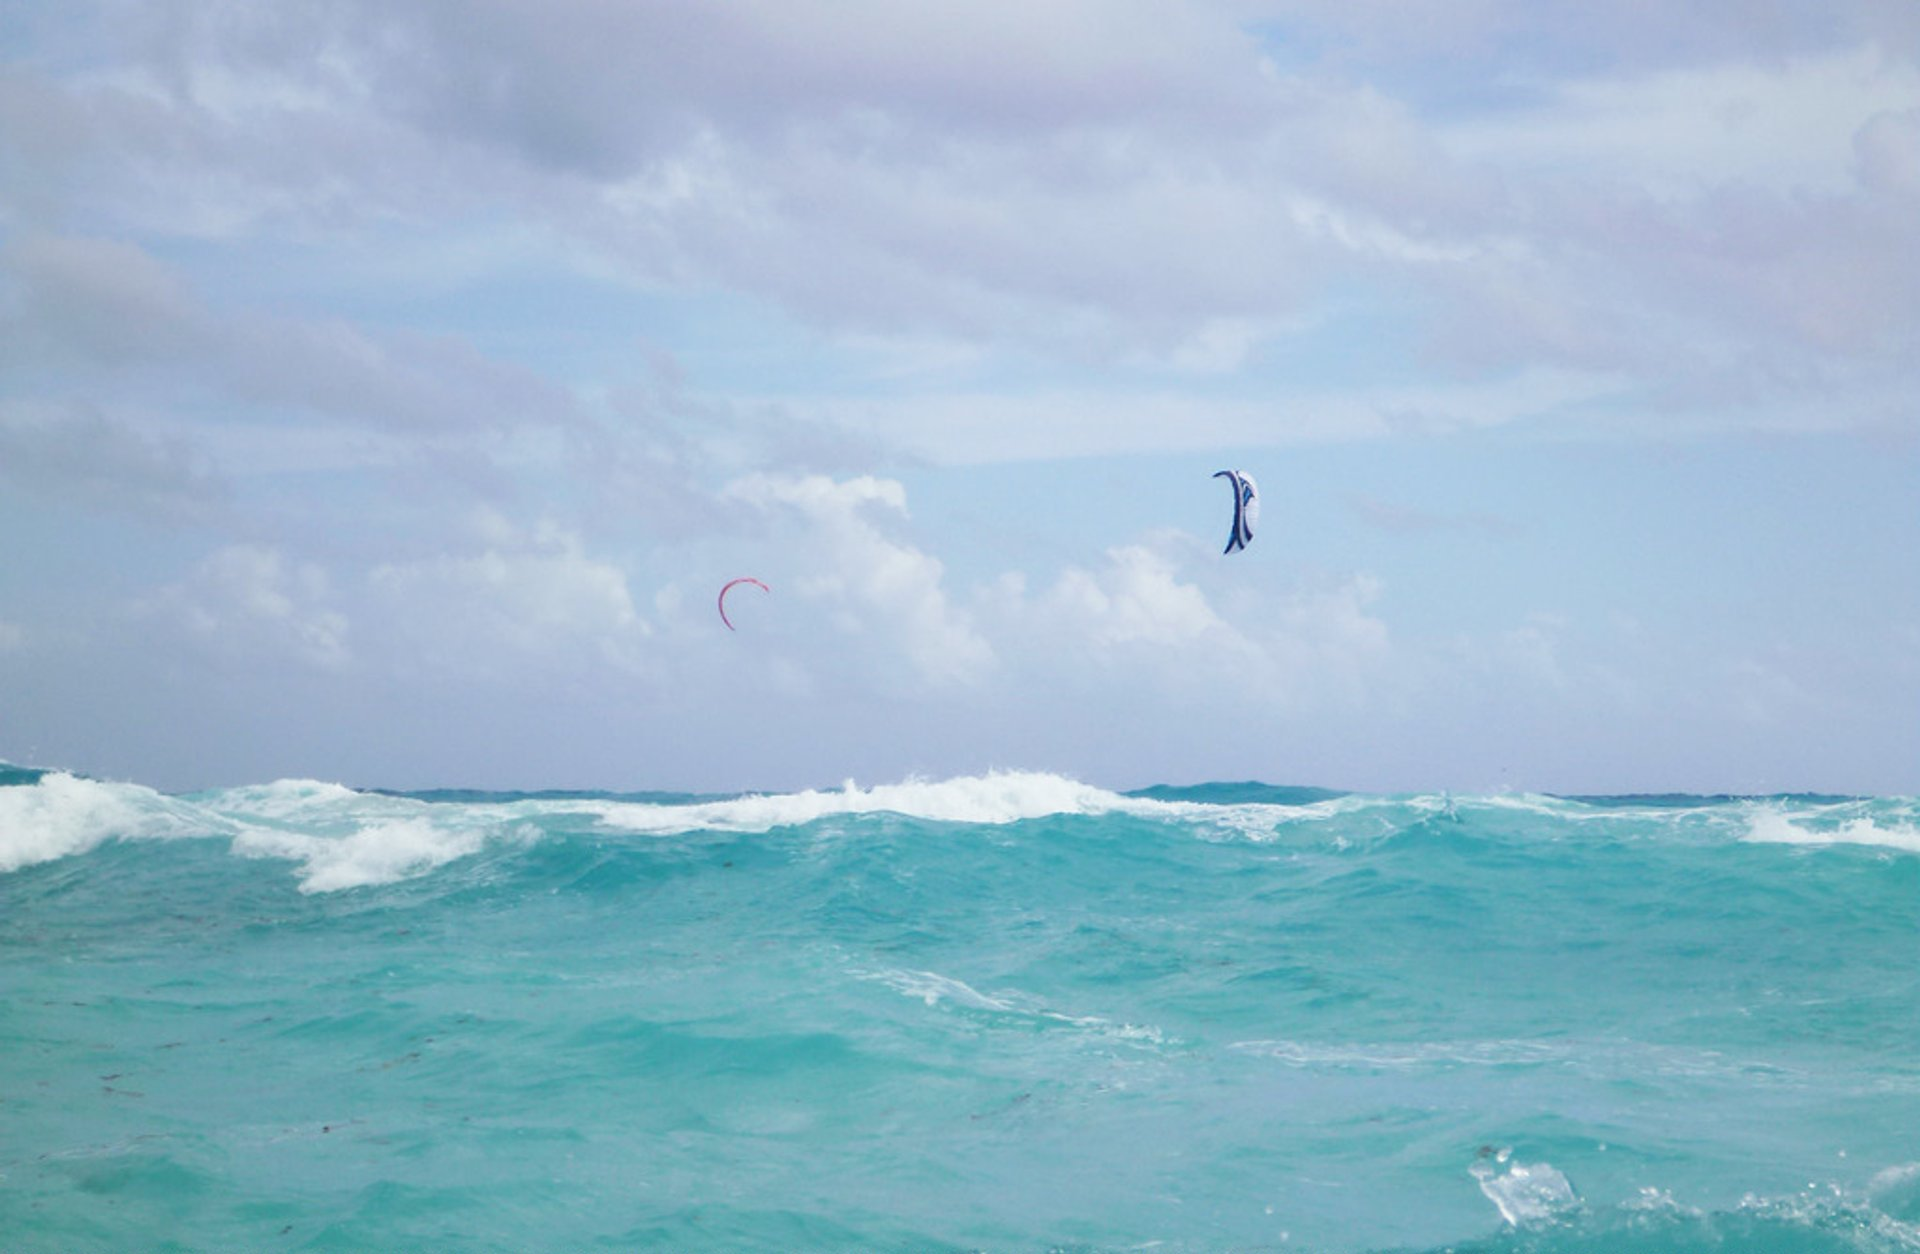 Kitesurfing at Playa Delfines